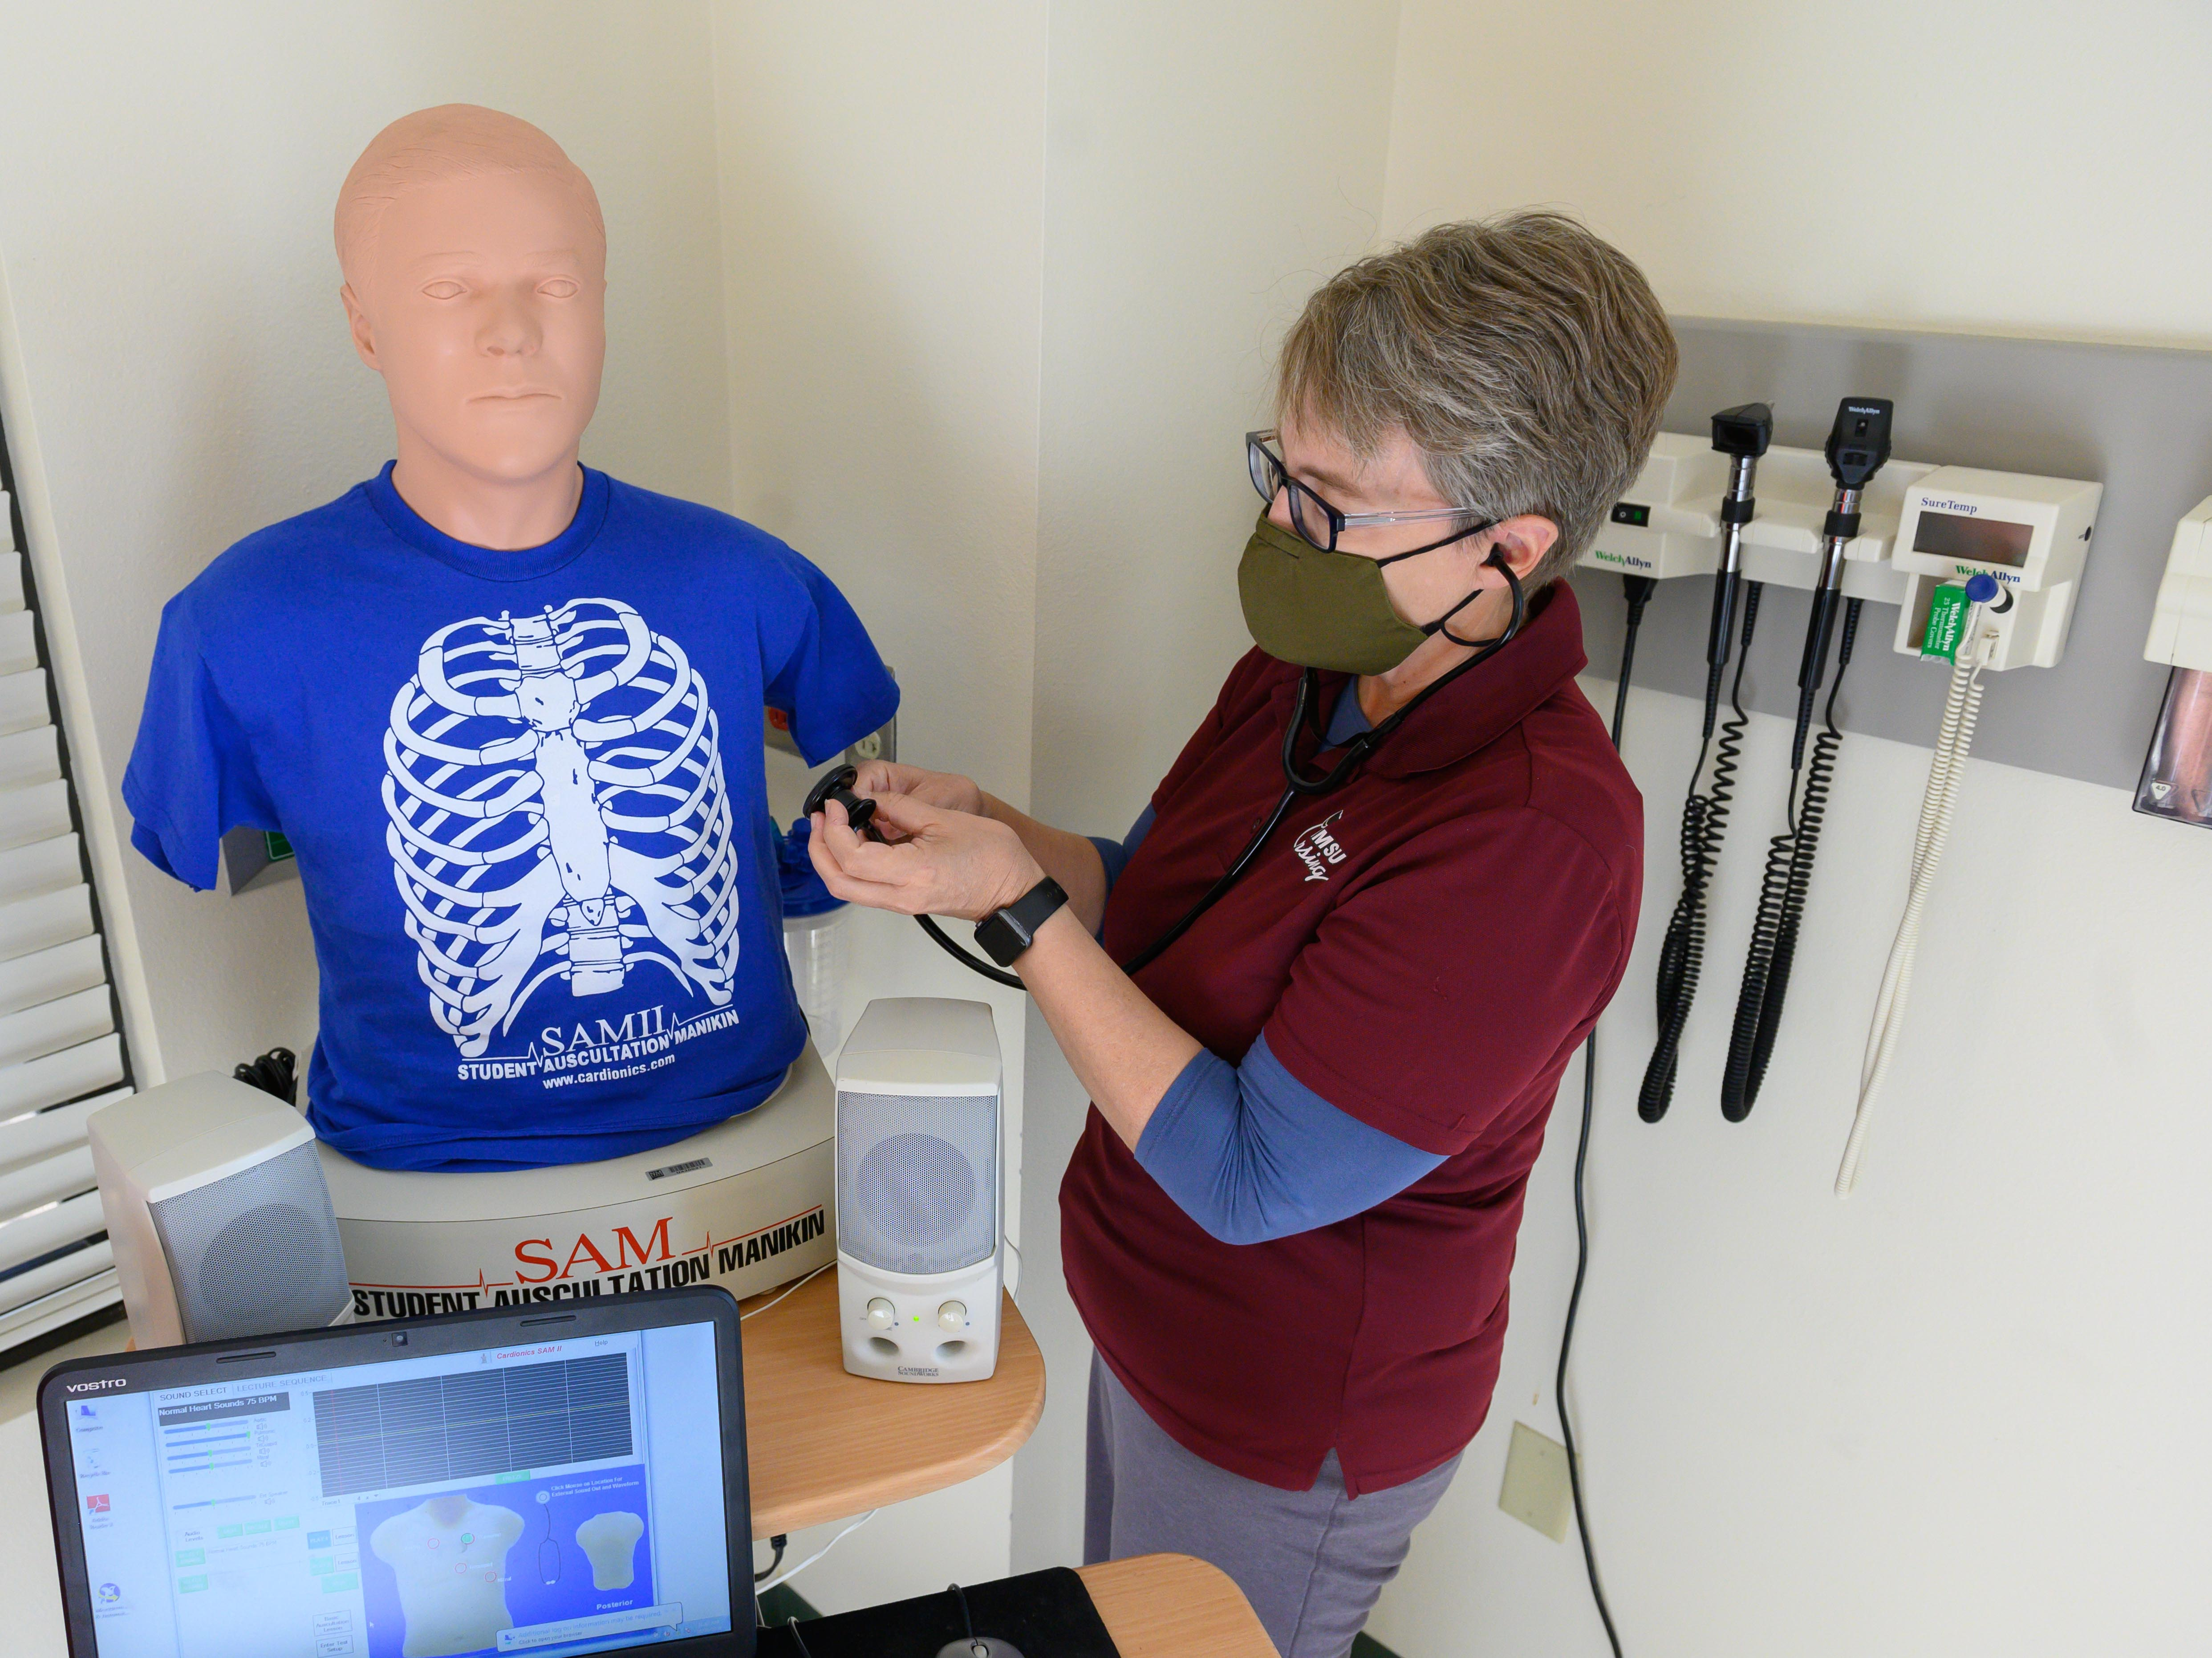 Alexa Doig, director of the School of Nursing at New Mexico State University, performs a physical assessment on a training mannequin inside of a lab at NMSU's College of Health and Social Services in October 2020.